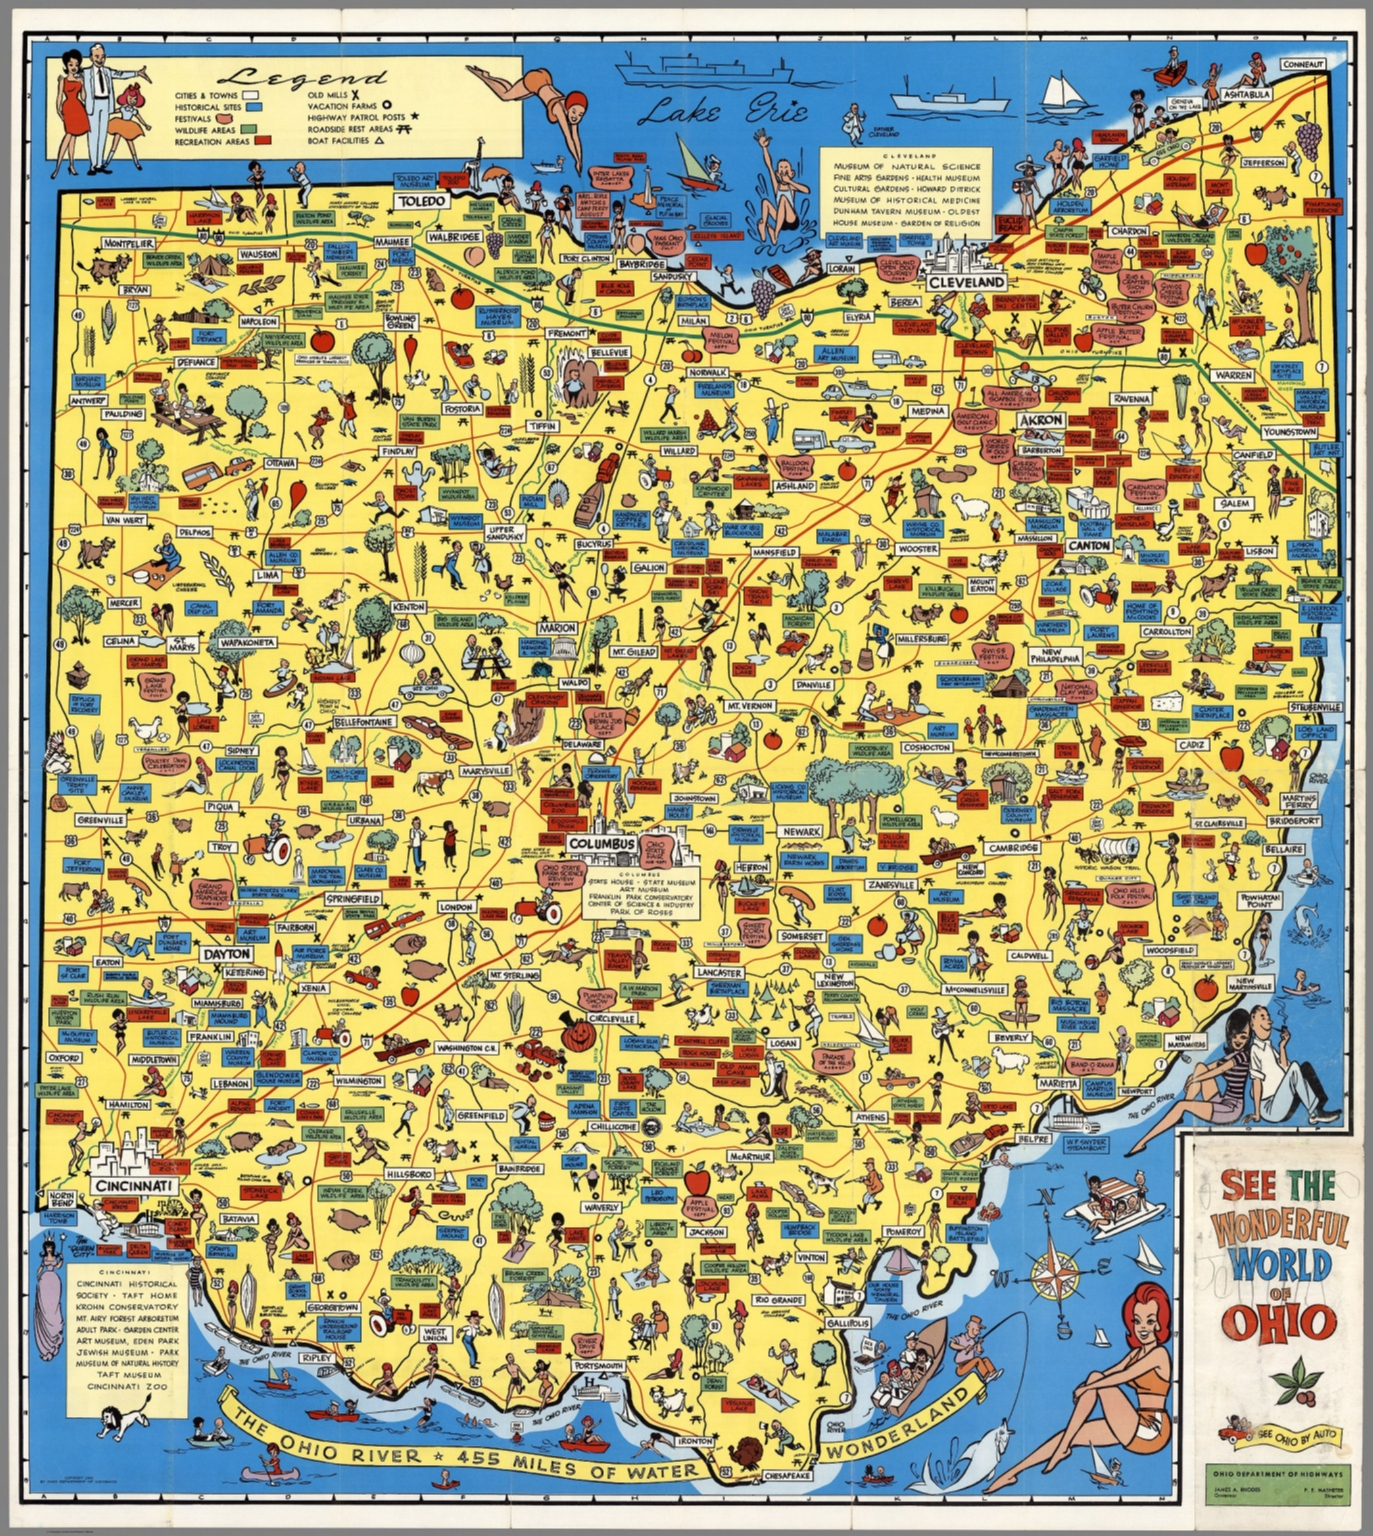 Map and cover see the wonderful world of ohio see ohio by auto map and cover see the wonderful world of ohio see ohio by auto ohio department of highw gumiabroncs Choice Image